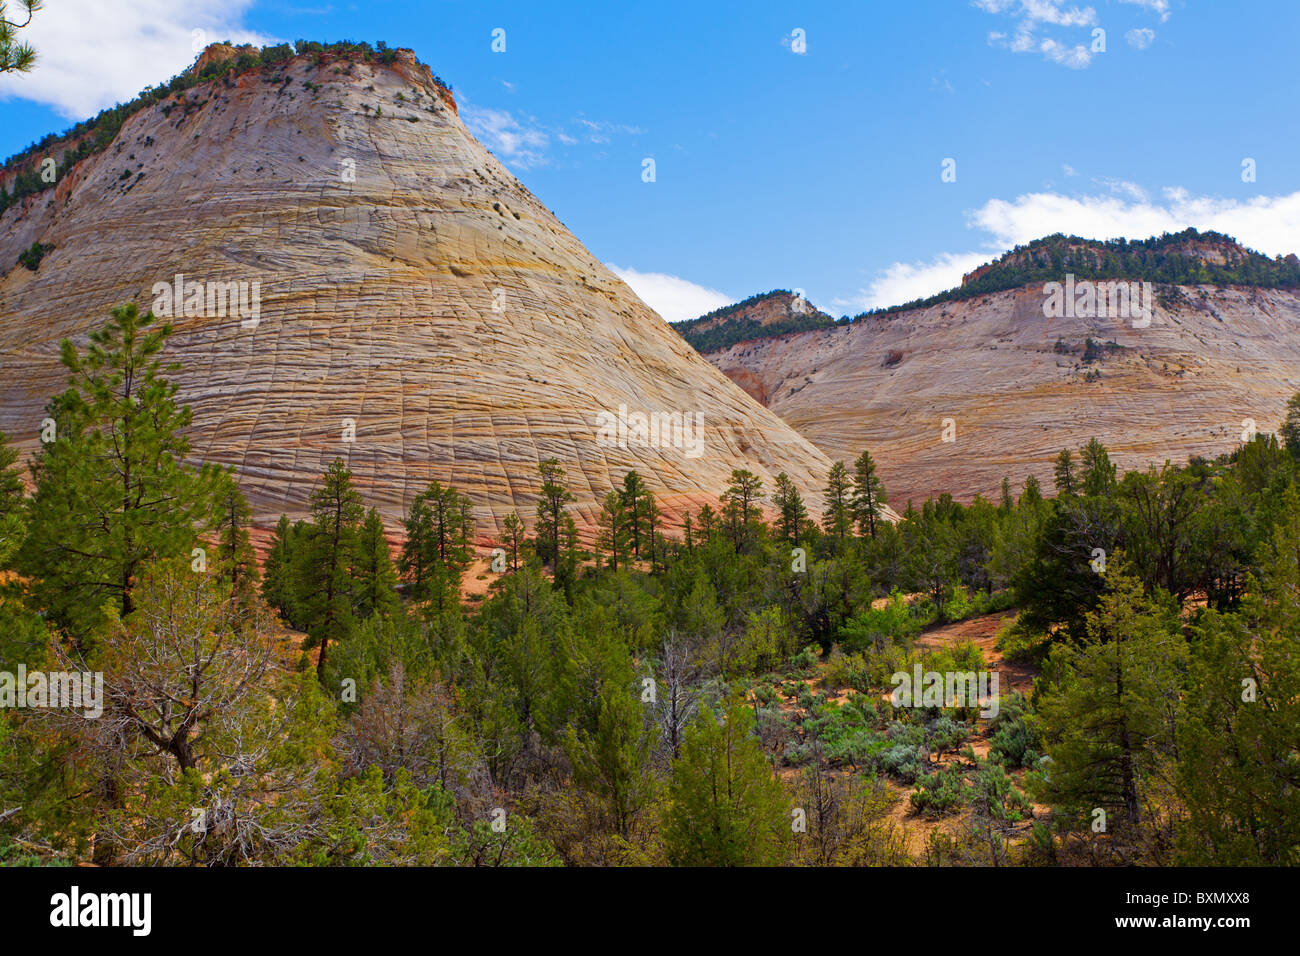 Checkerboard Mesa in Zion national park - Stock Image